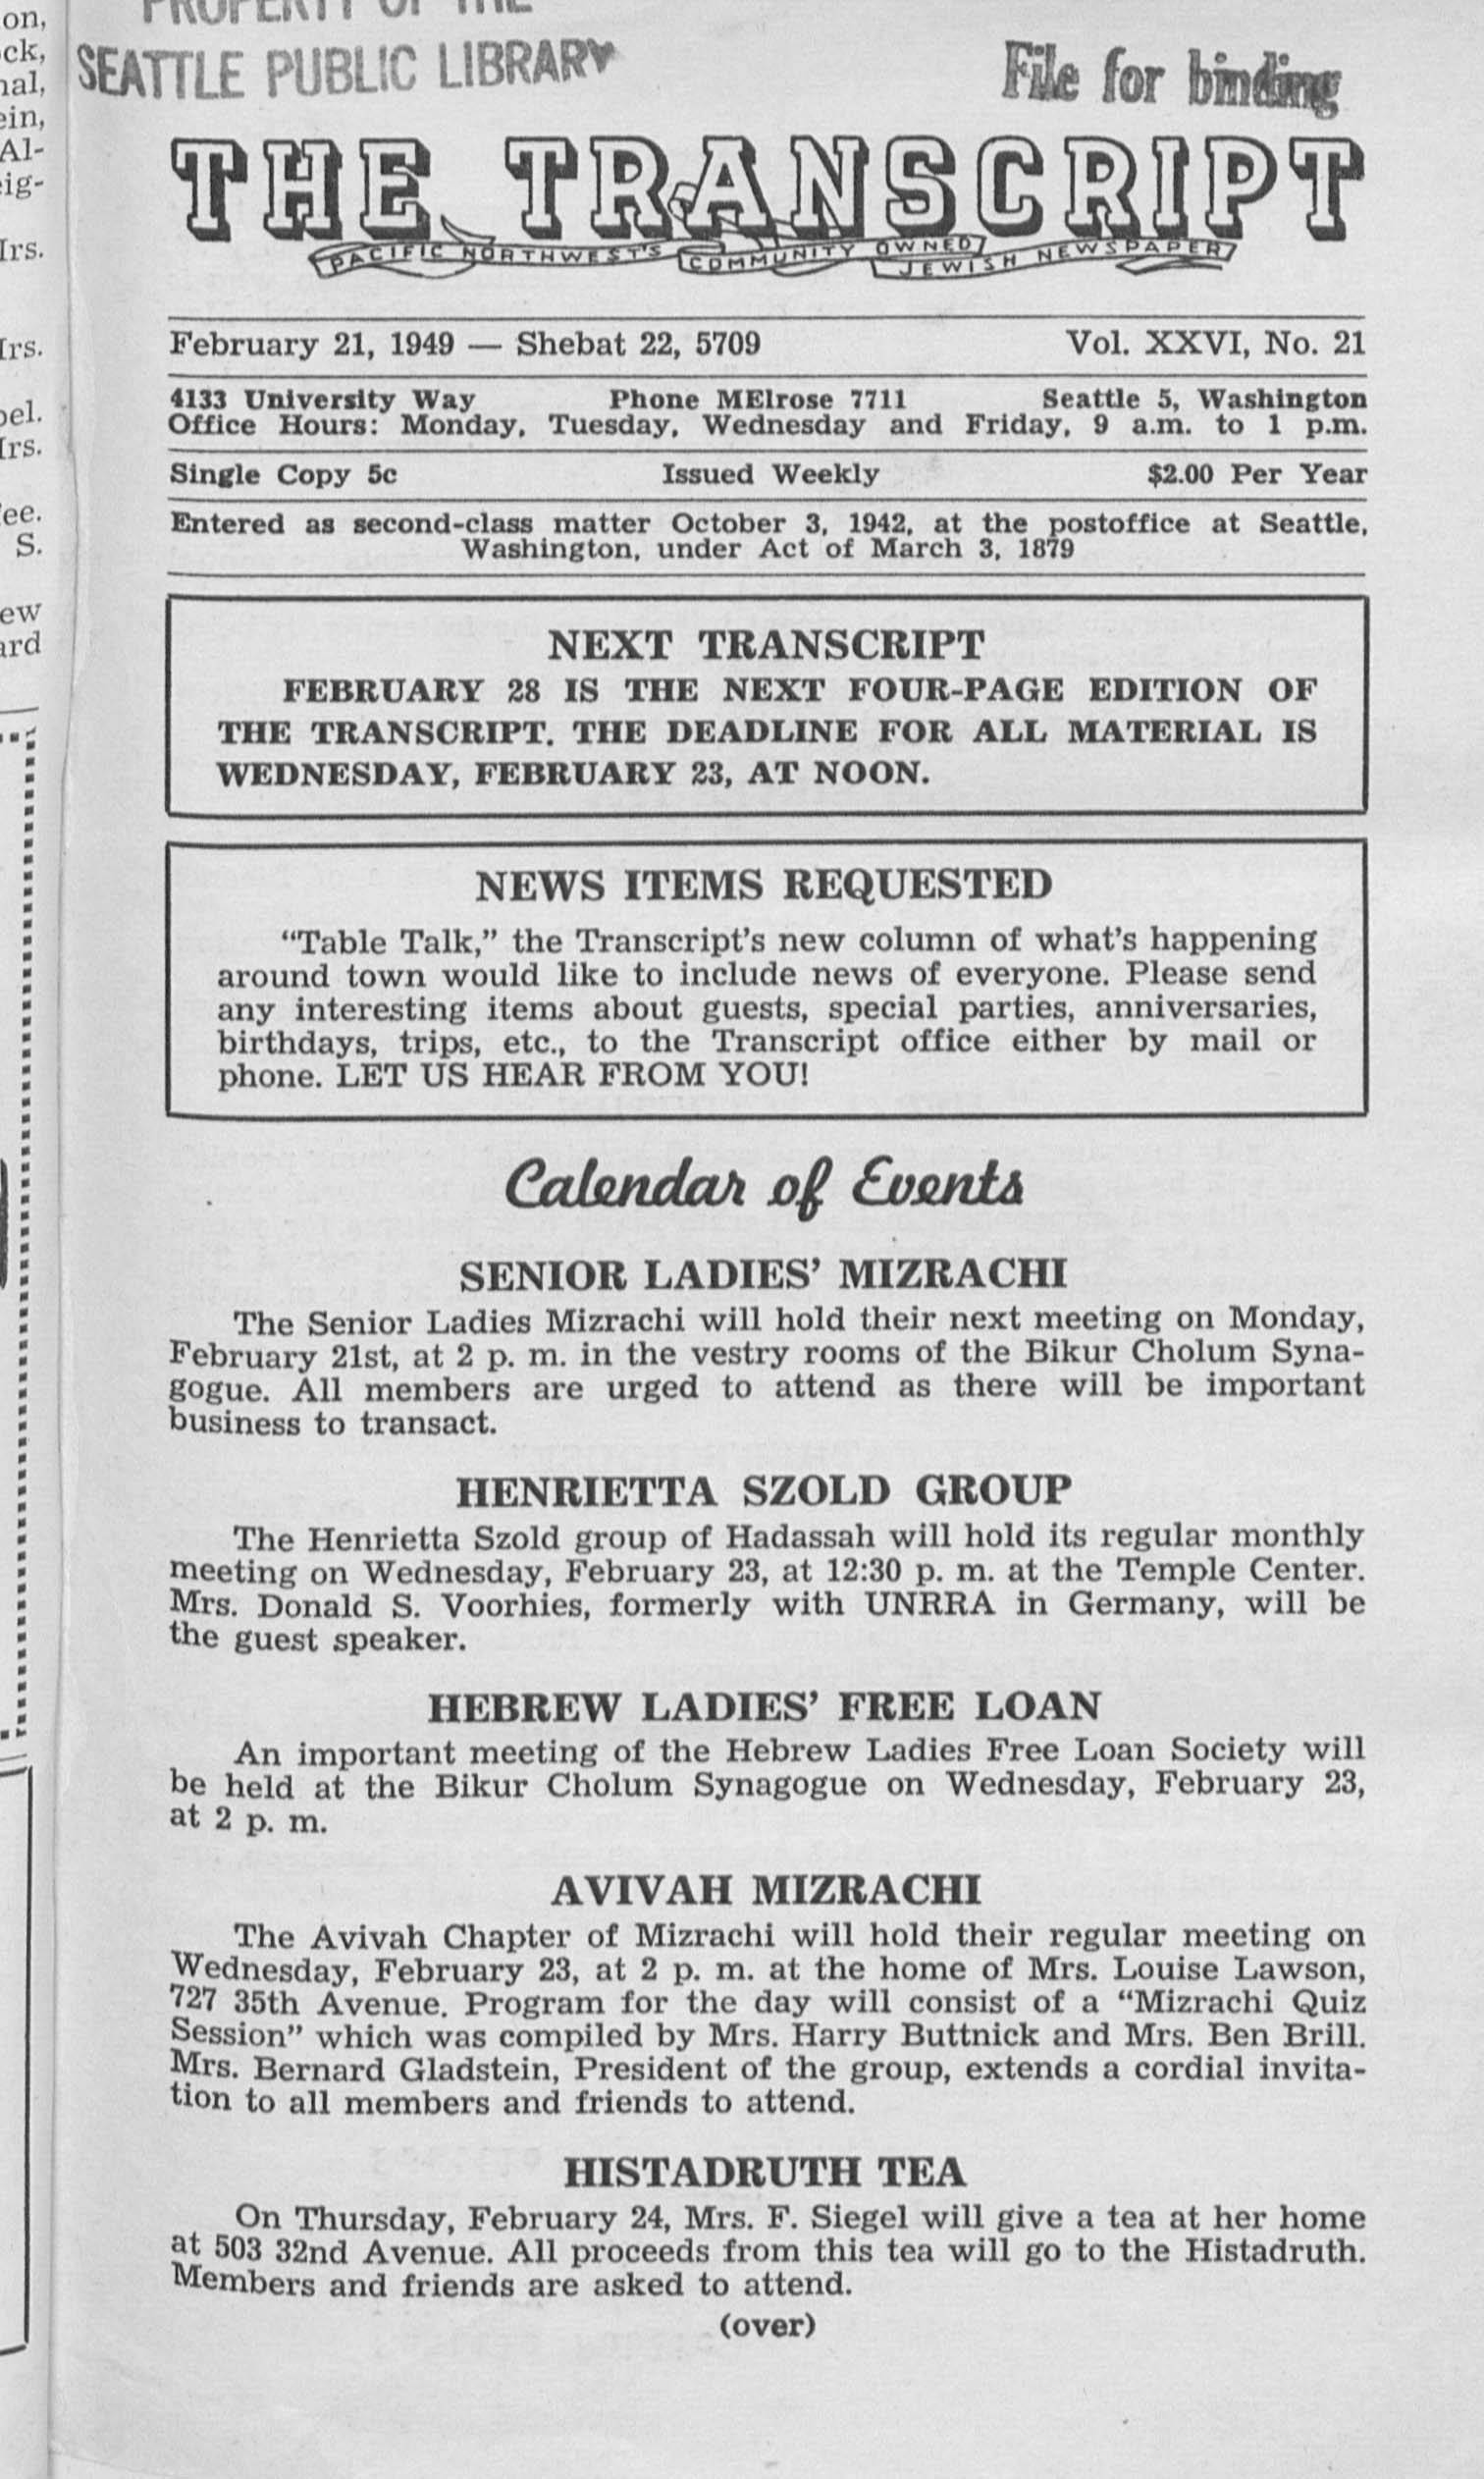 Jewish Transcript, v. 26, no. 21,  Feb. 21, 1949